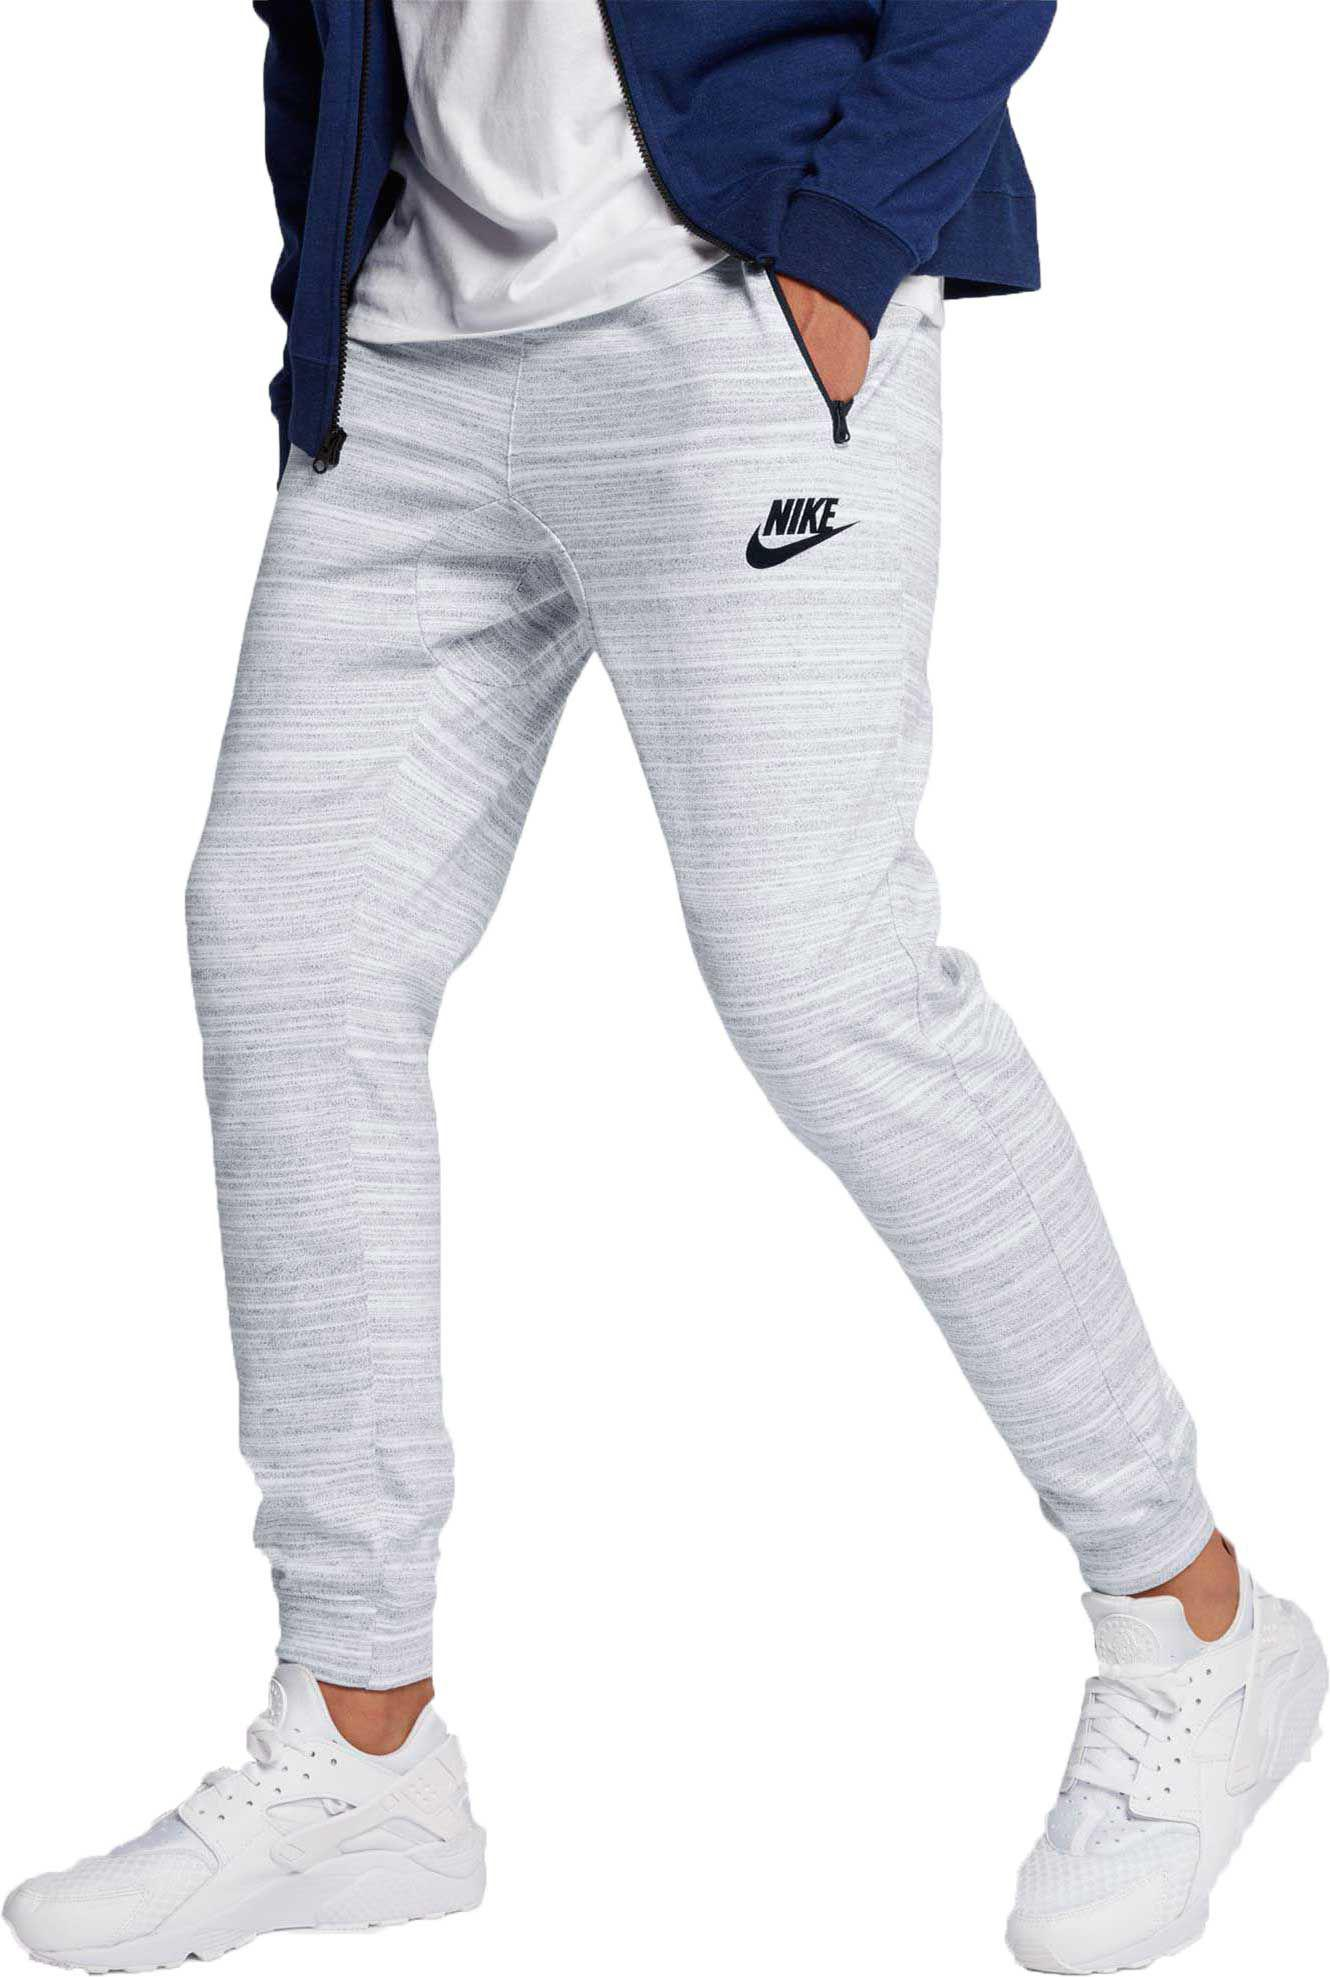 18ec095a7d4c Nike Mens Nsw Av15 Jogger Knit Sweatpants